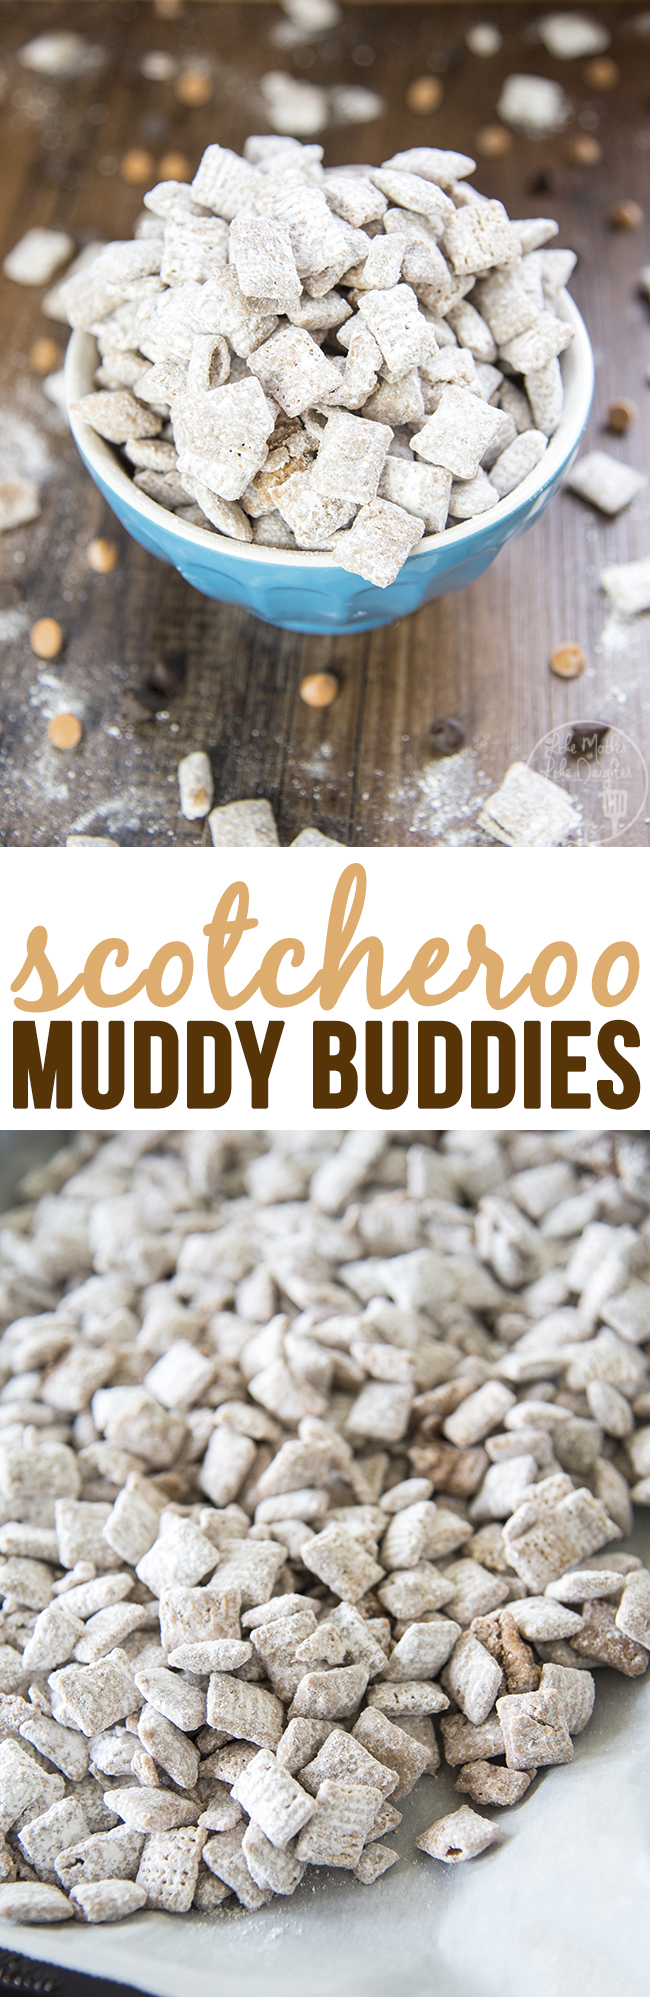 Scotcheroo Muddy Buddies - this twist on traditional muddies is just as irresistible as the original. Its got the flavors of chocolate, peanut butter and butterscotch for a delicious treat that tastes just like scotcheroo bars.